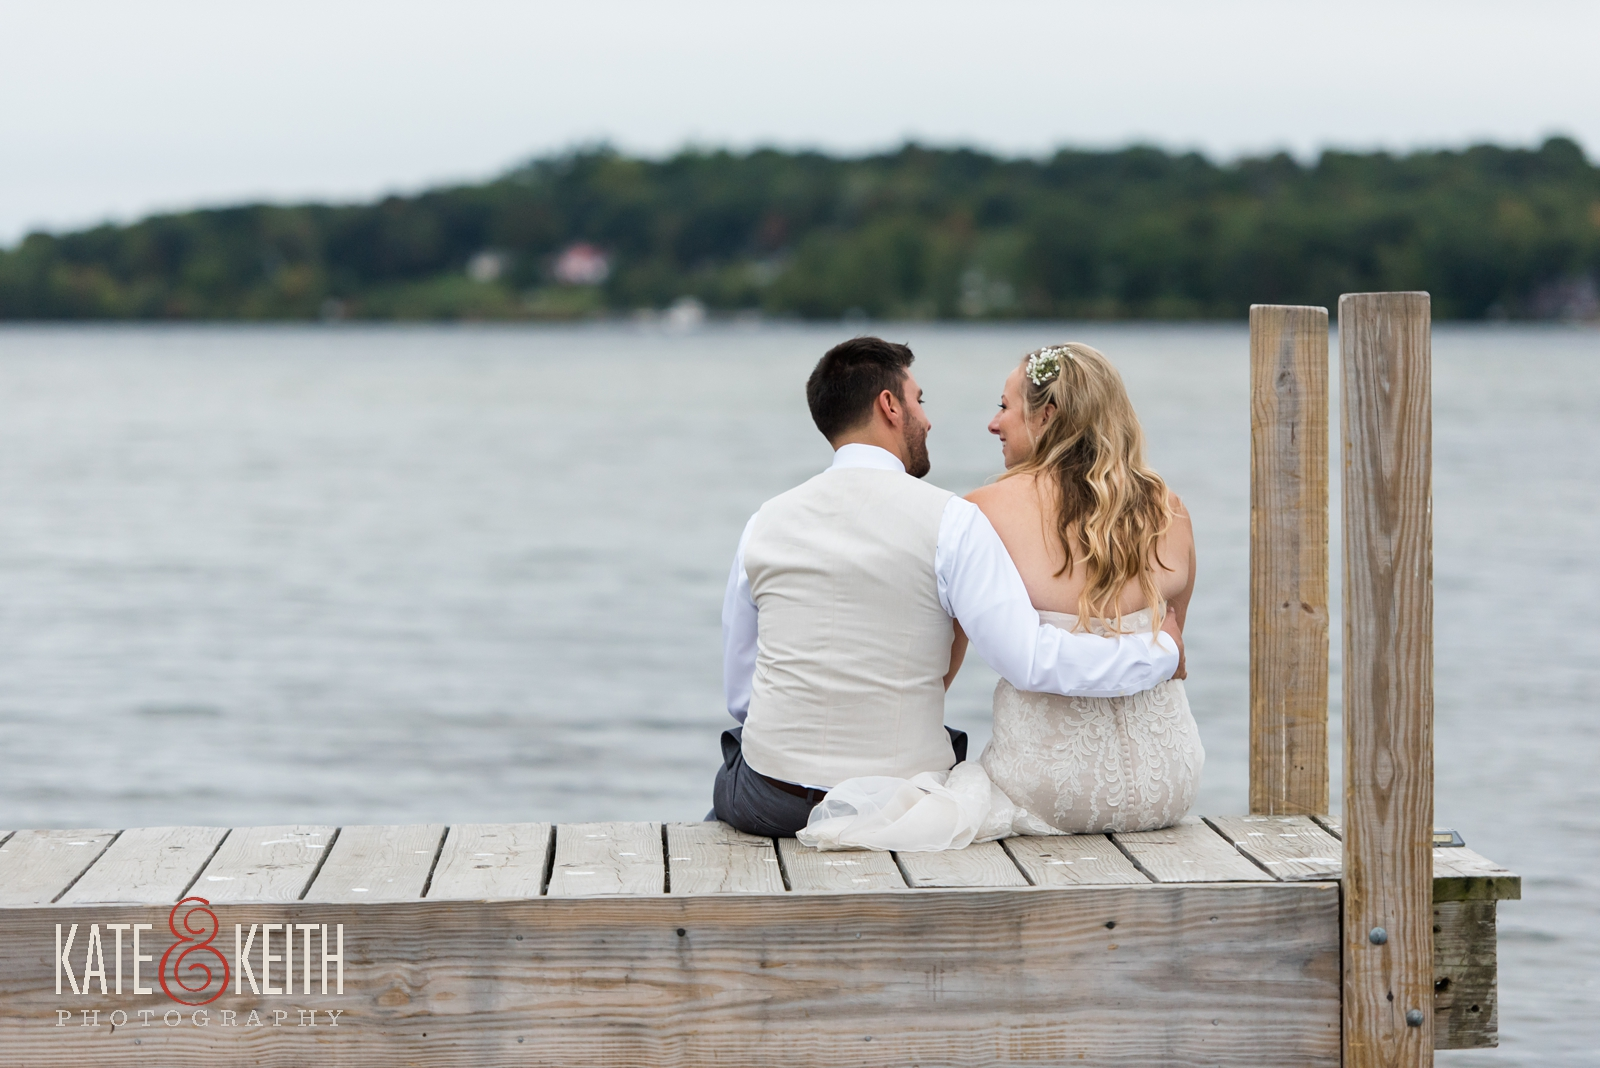 New Hampshire, Lakes Region, Lake Winnipesaukee, The Margate Resort, wedding, outdoor wedding, lakeside wedding, wedding portraits, couple portraits, couple photos, bride and groom photos, lakeside wedding portraits, dock photo, wedding photos on dock, bride and groom sitting together on dock